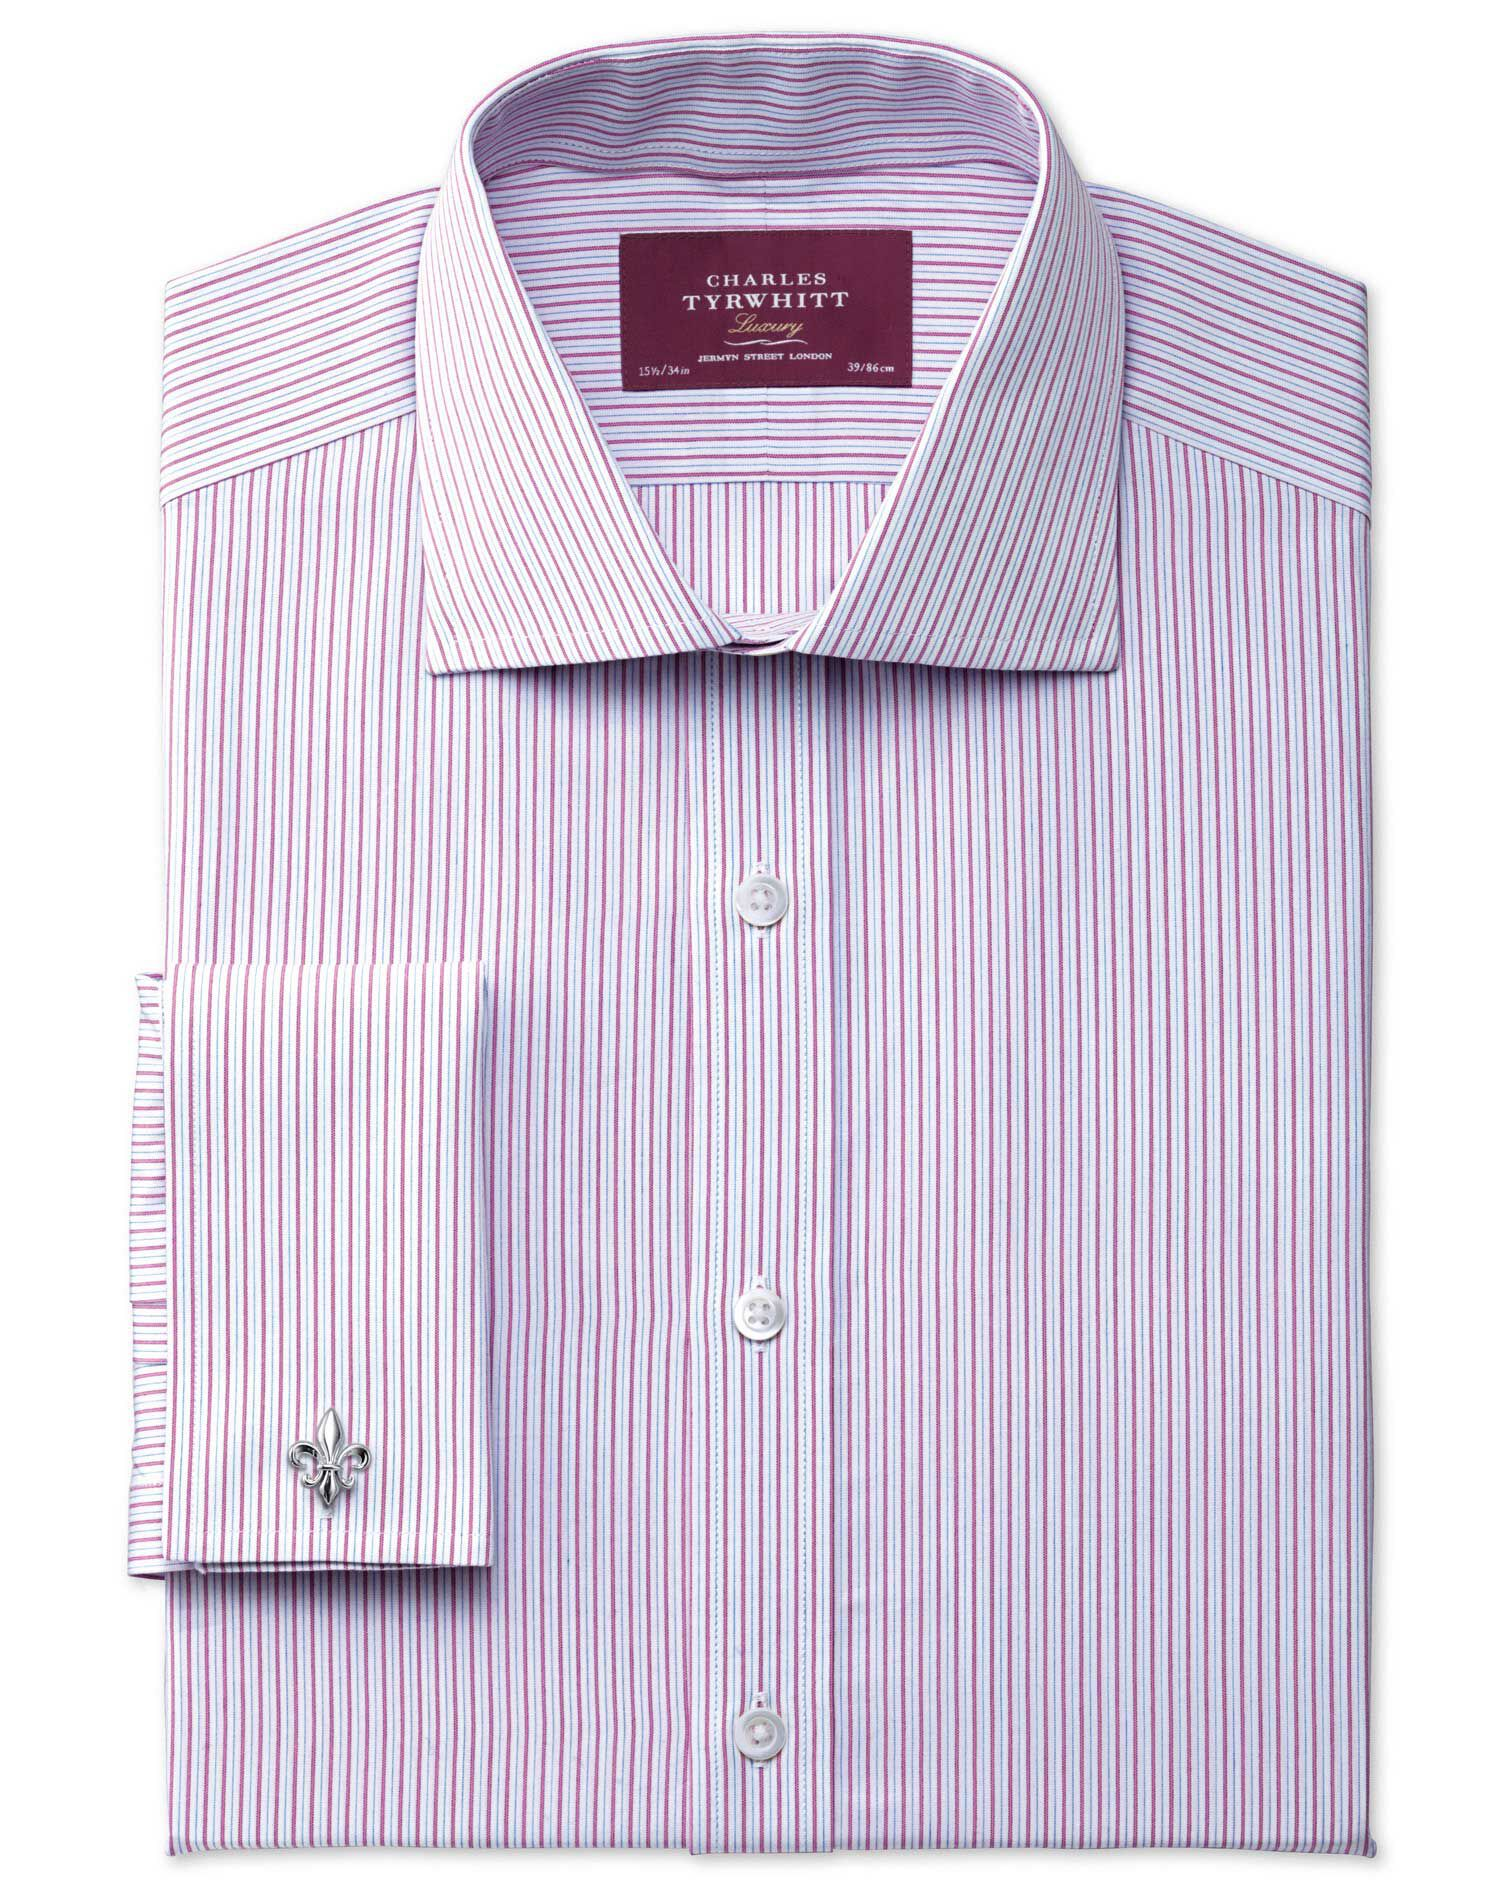 Slim Fit Semi-Cutaway Collar Luxury Poplin Pink Cotton Formal Shirt Double Cuff Size 17/34 by Charle